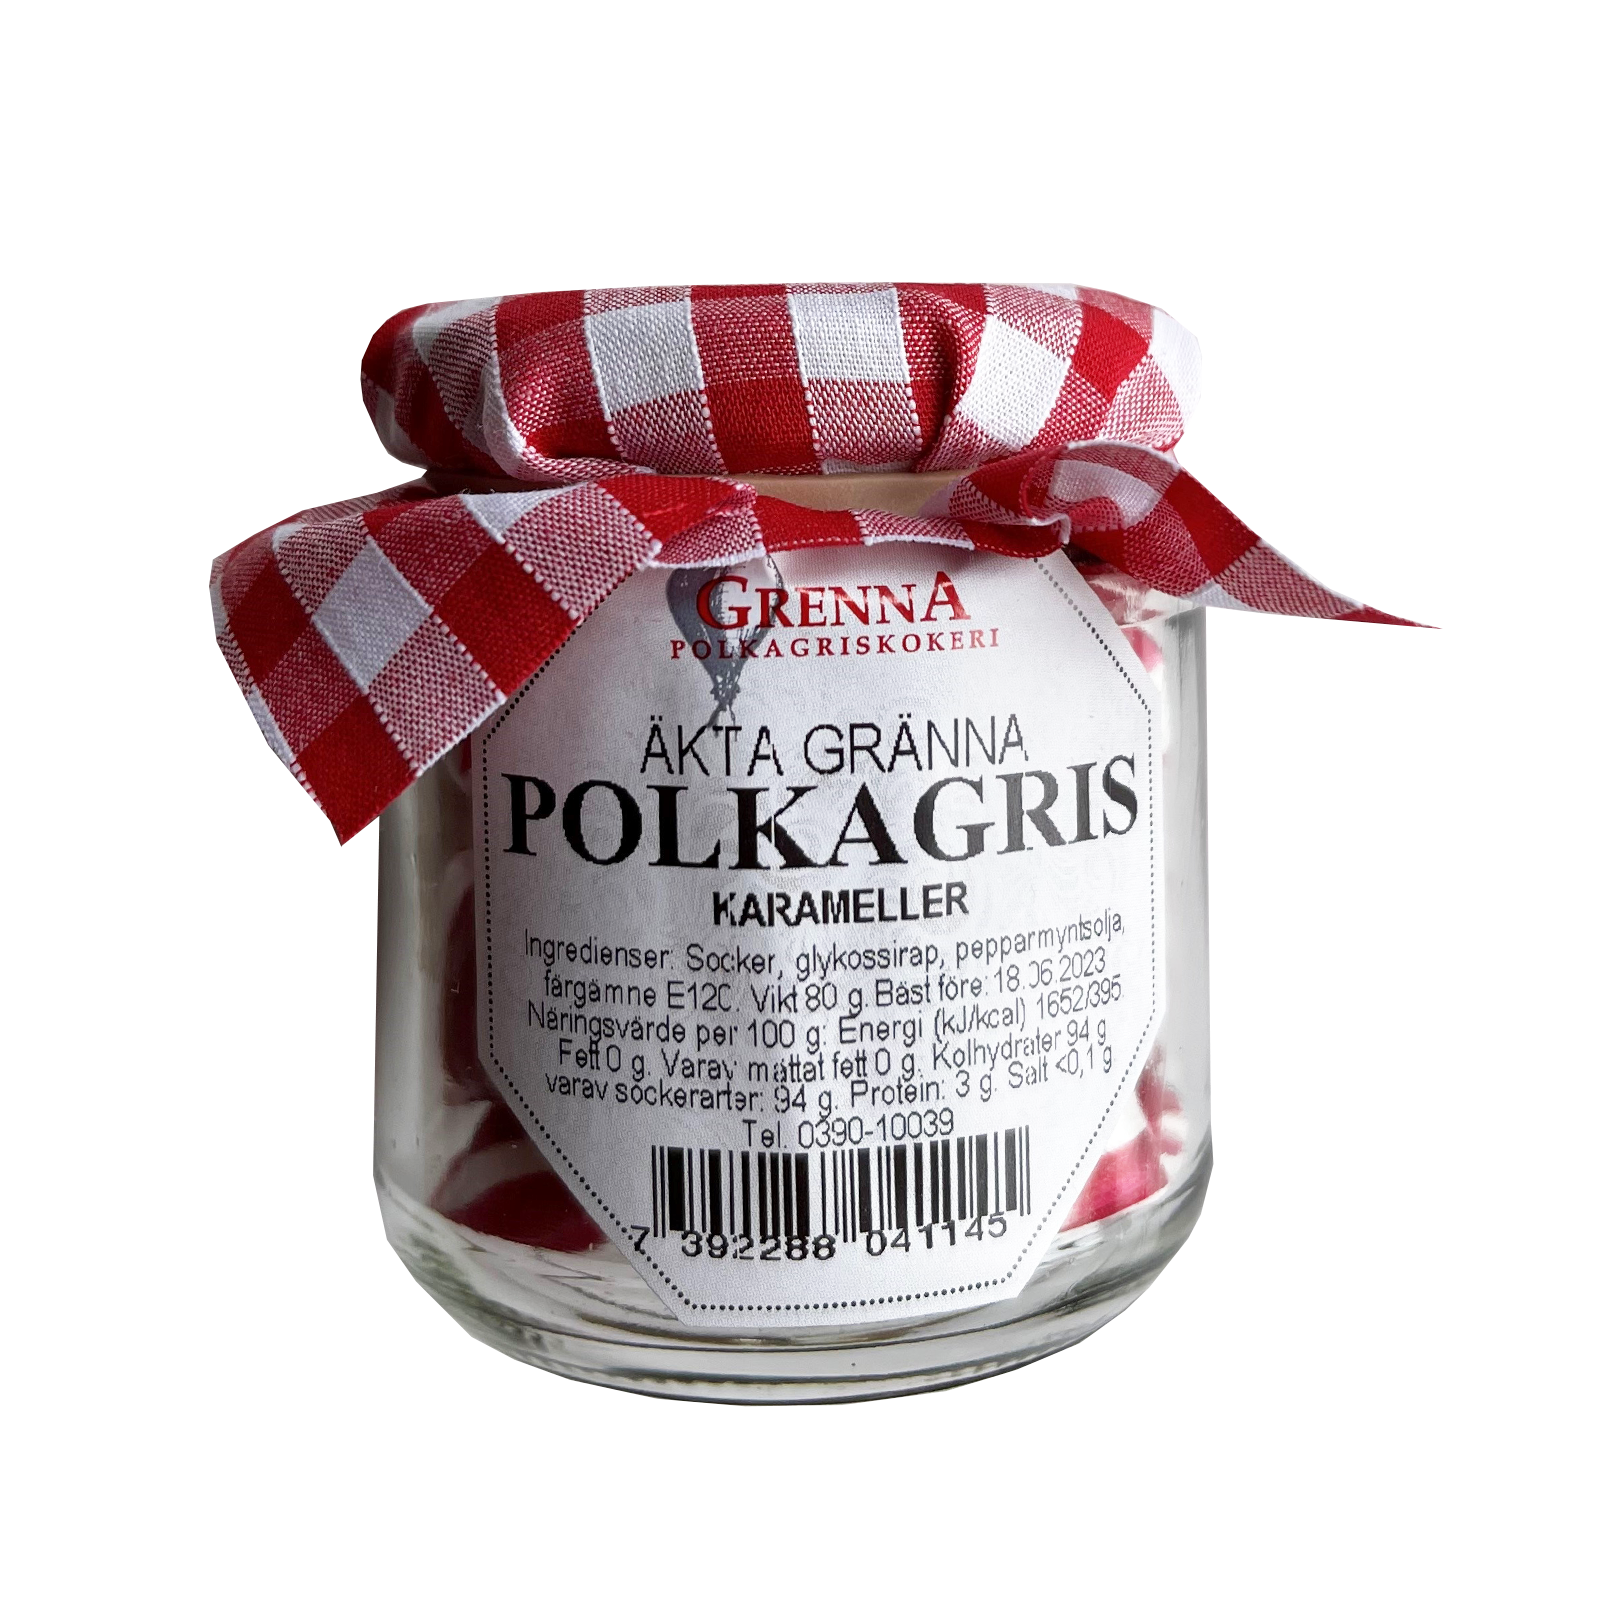 Small glass jar with peppermint sweets